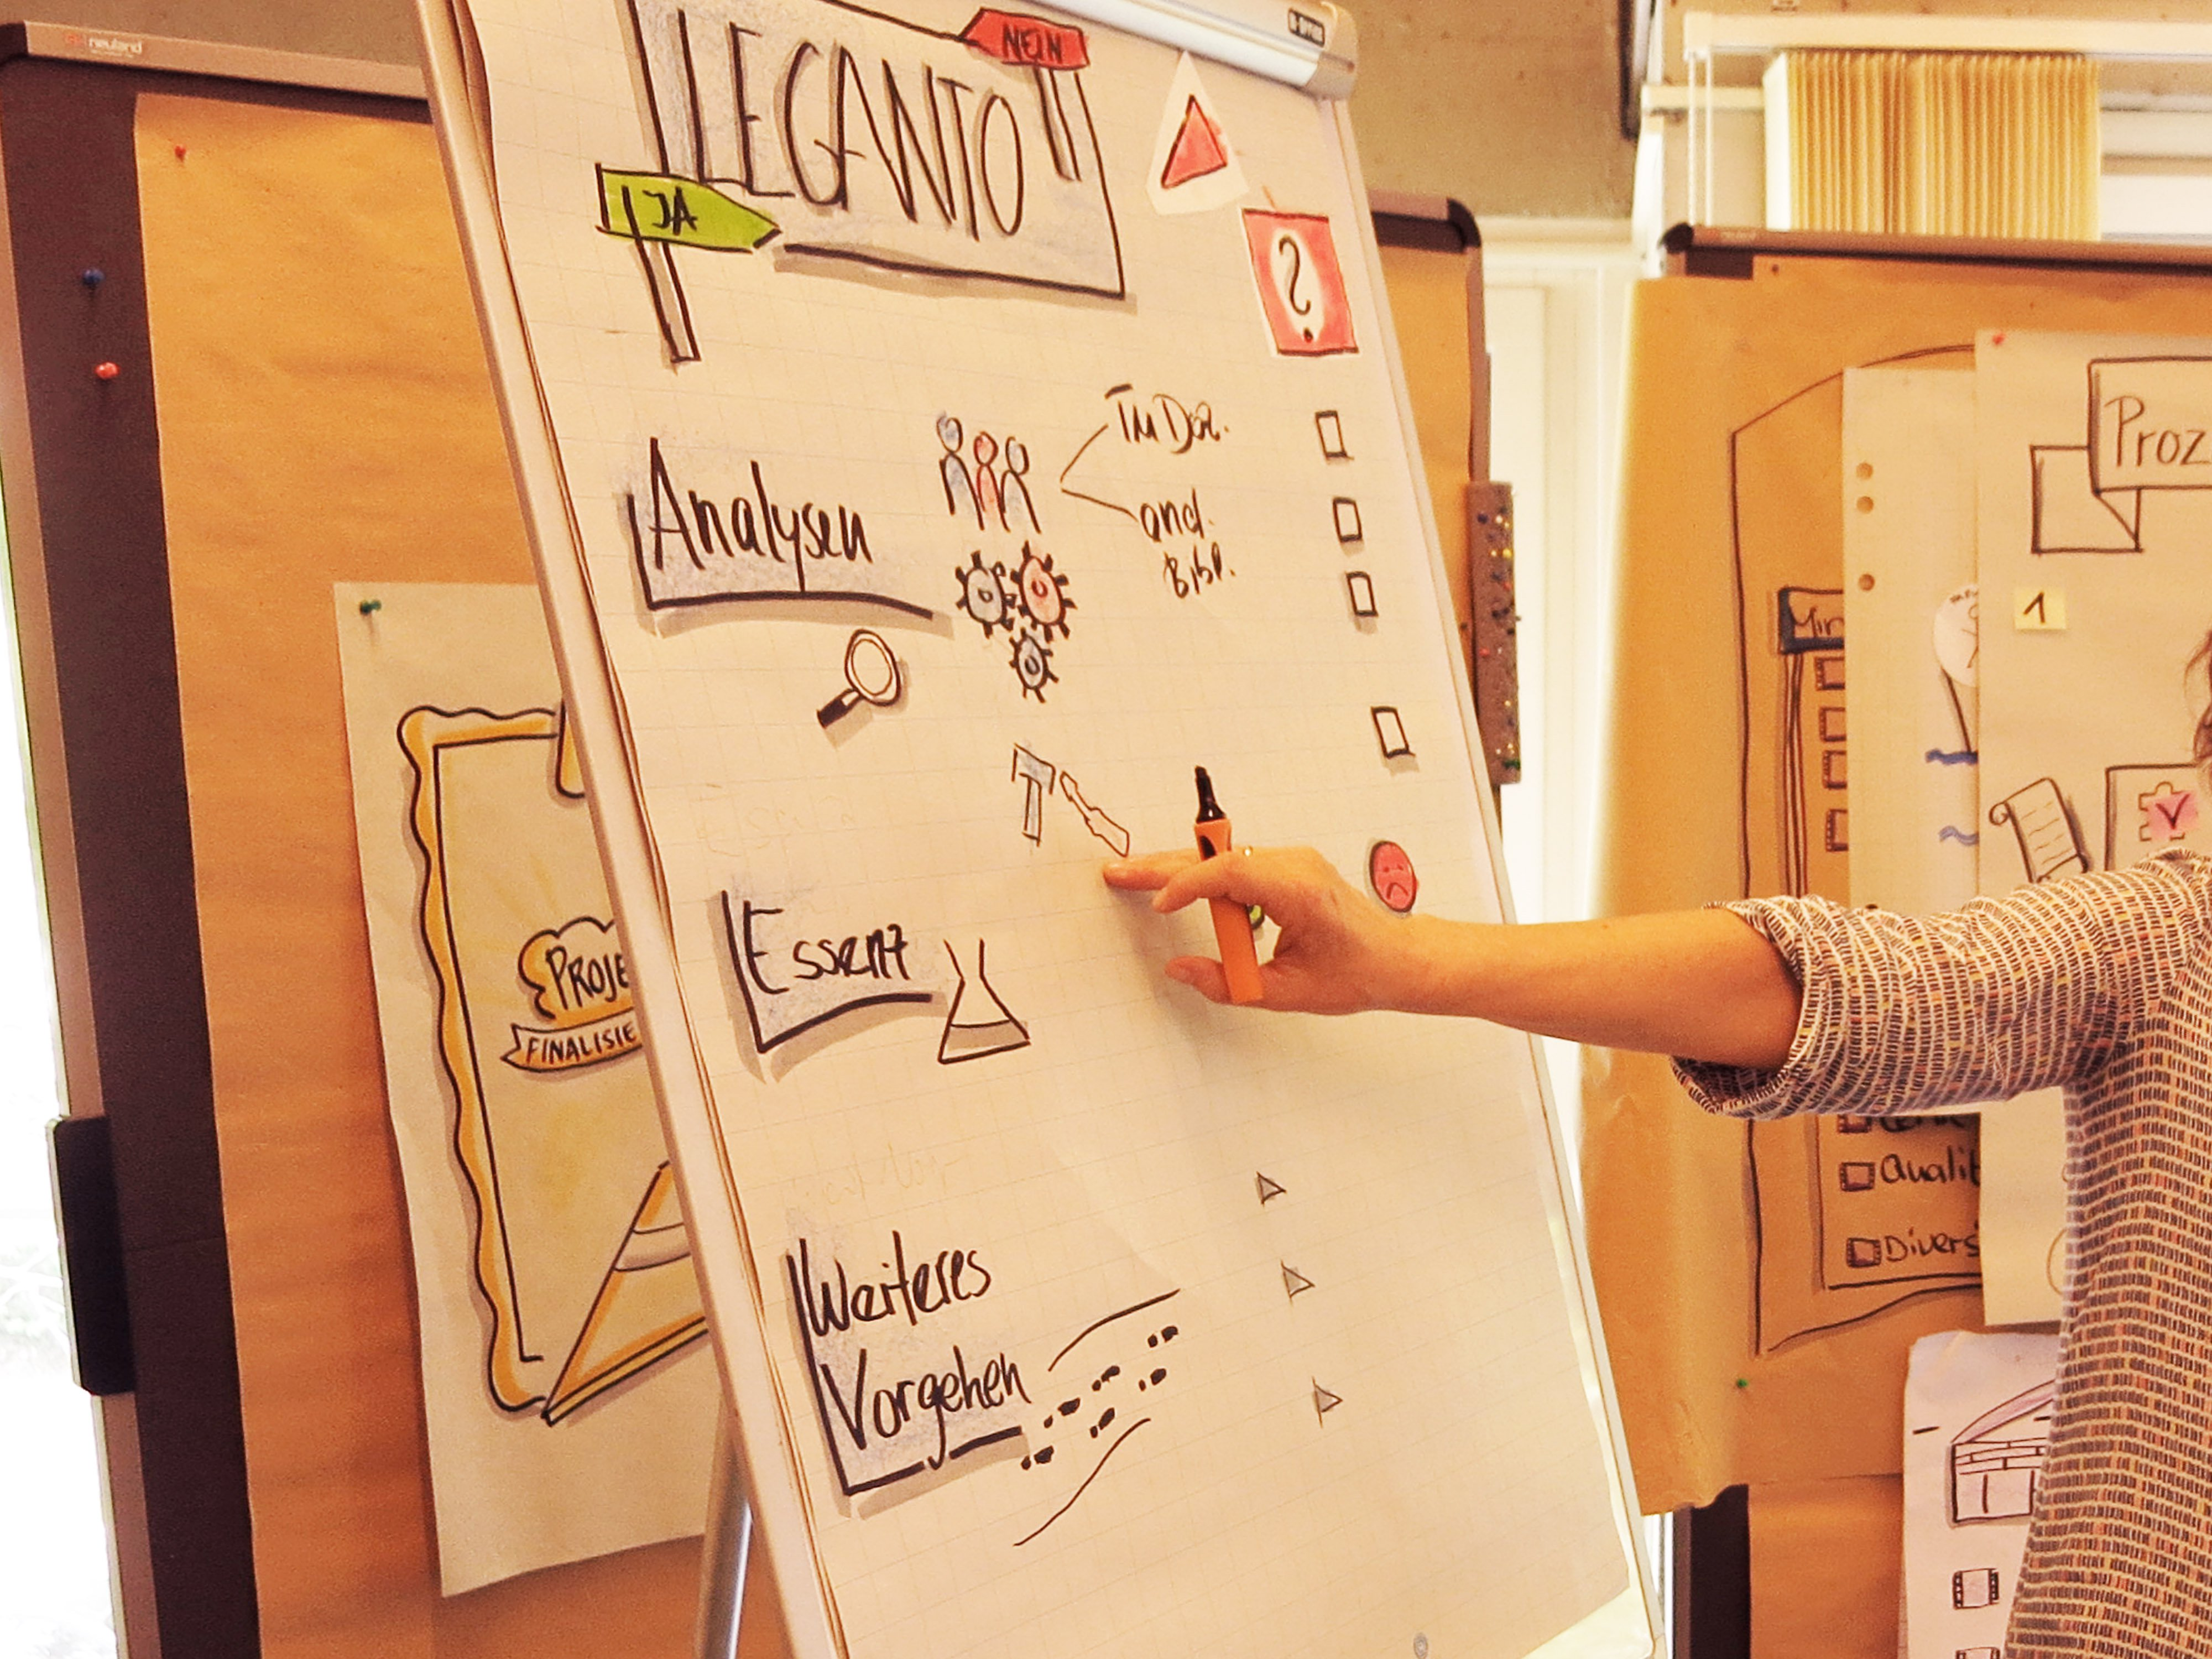 Visual Mapping & Storytelling workshop